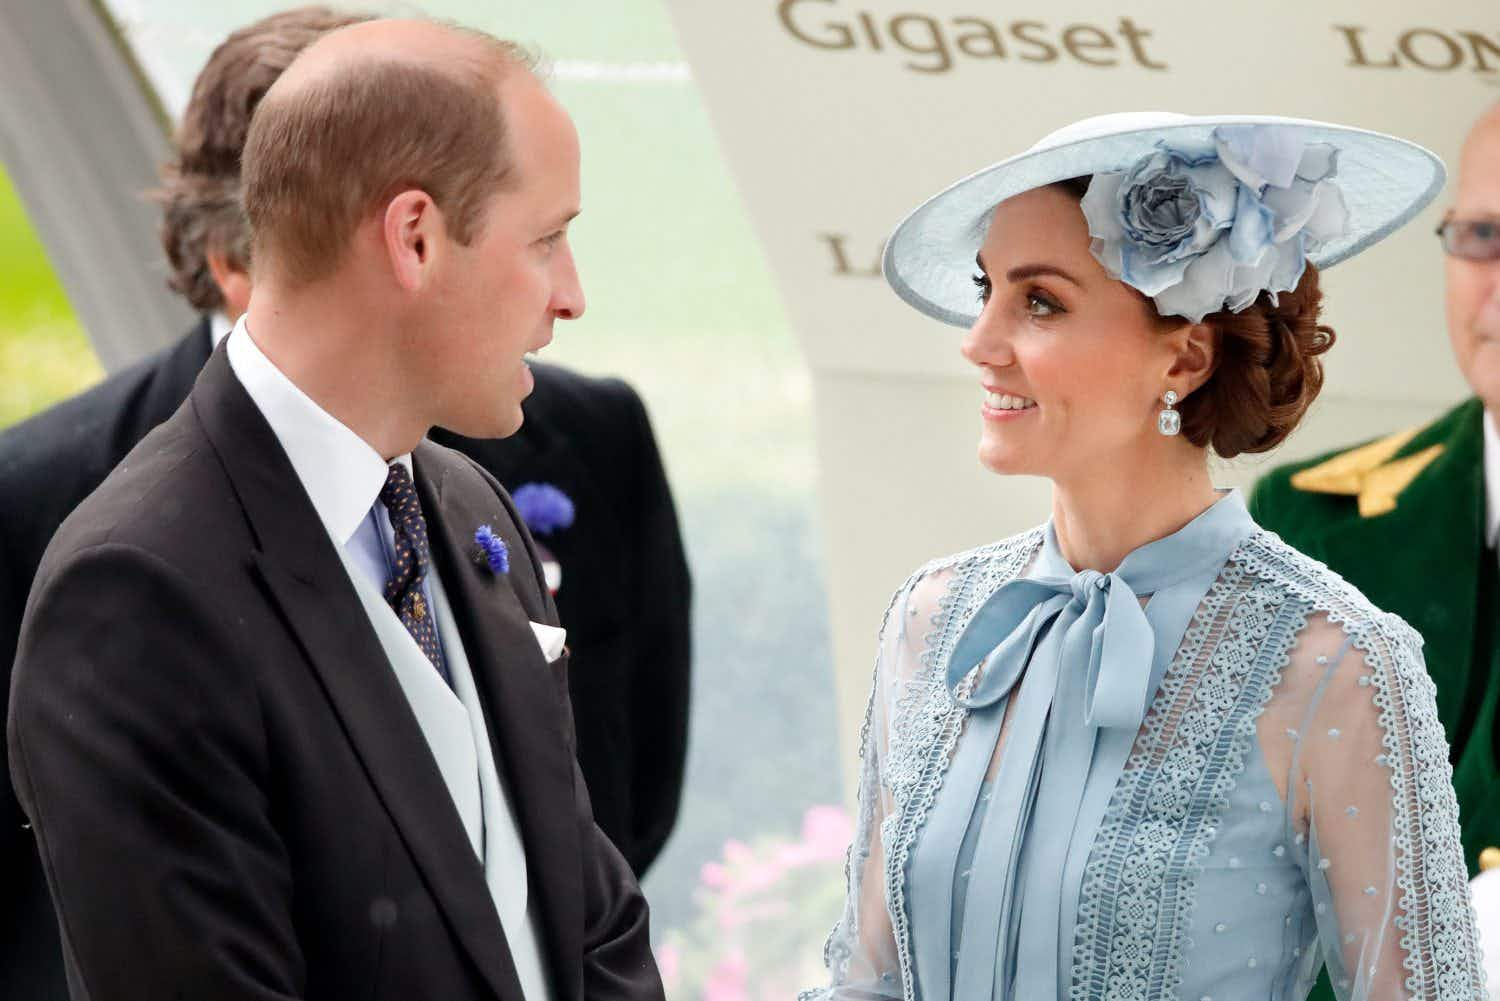 William and Kate are making an official visit to Pakistan this autumn